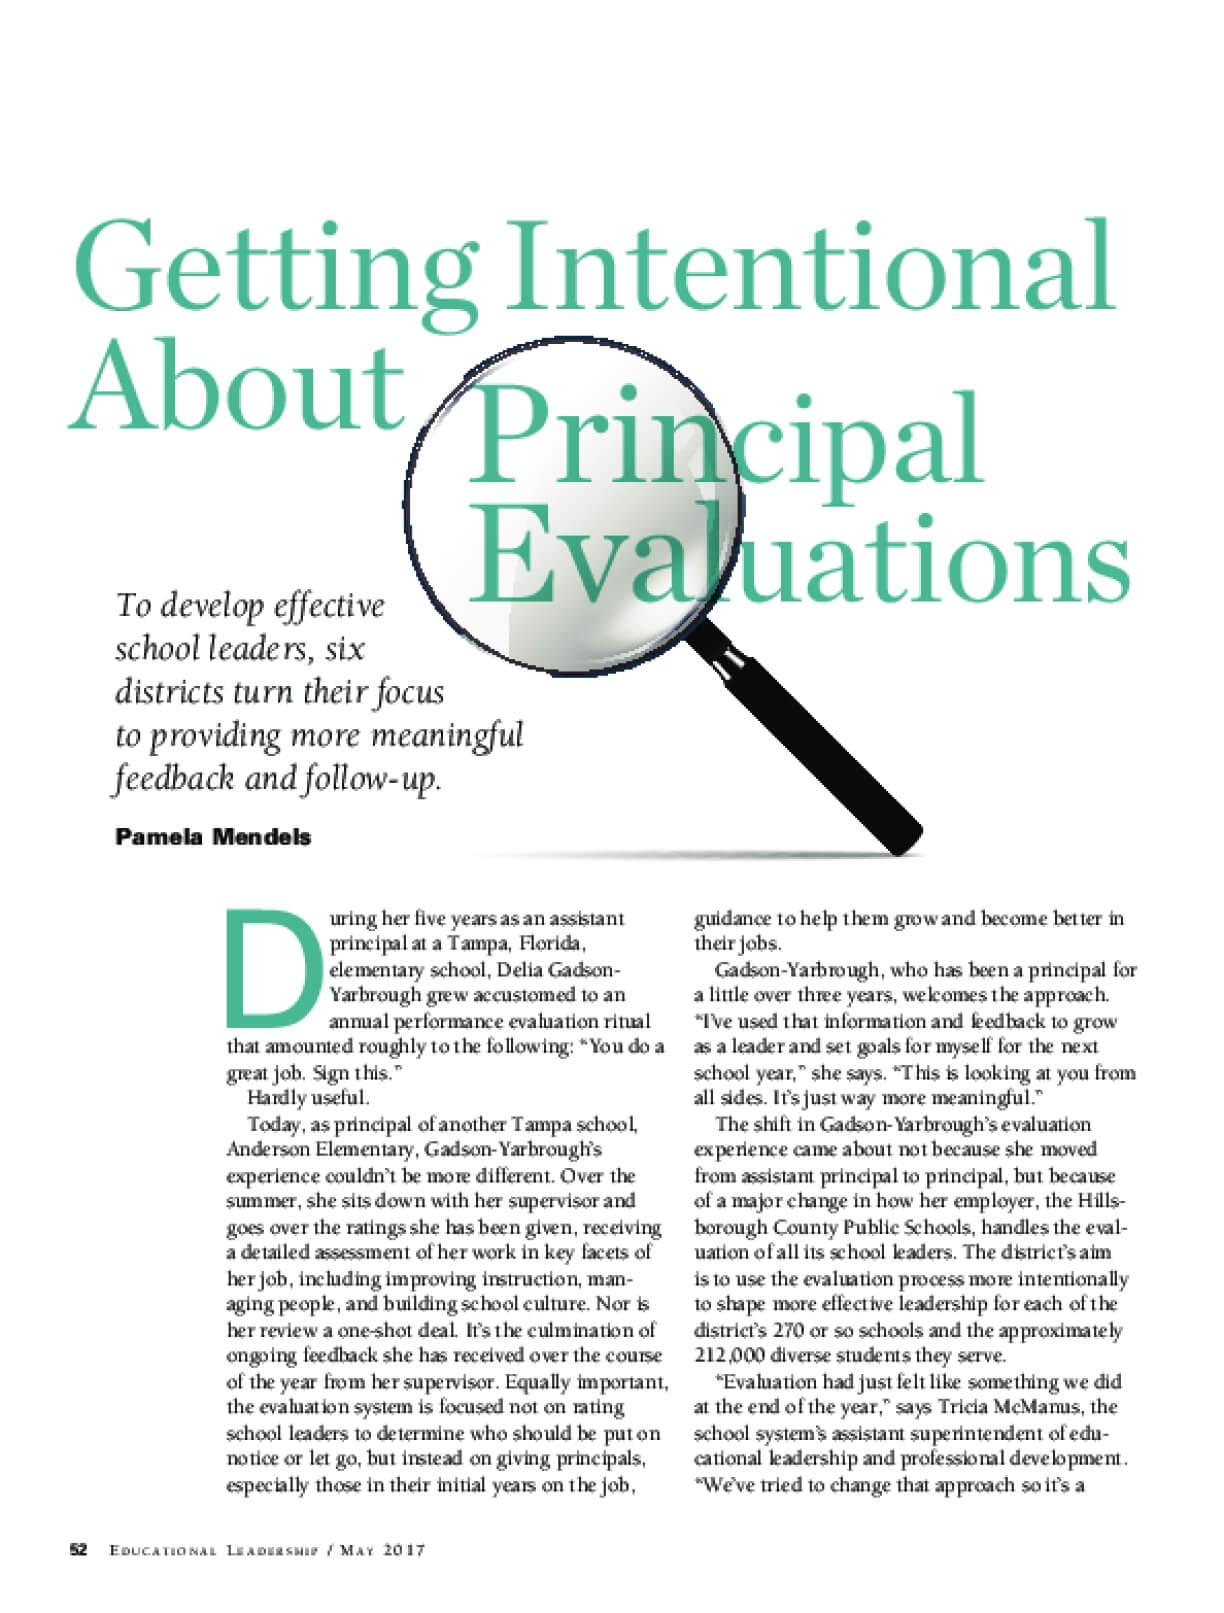 Getting Intentional About Principal Evaluations